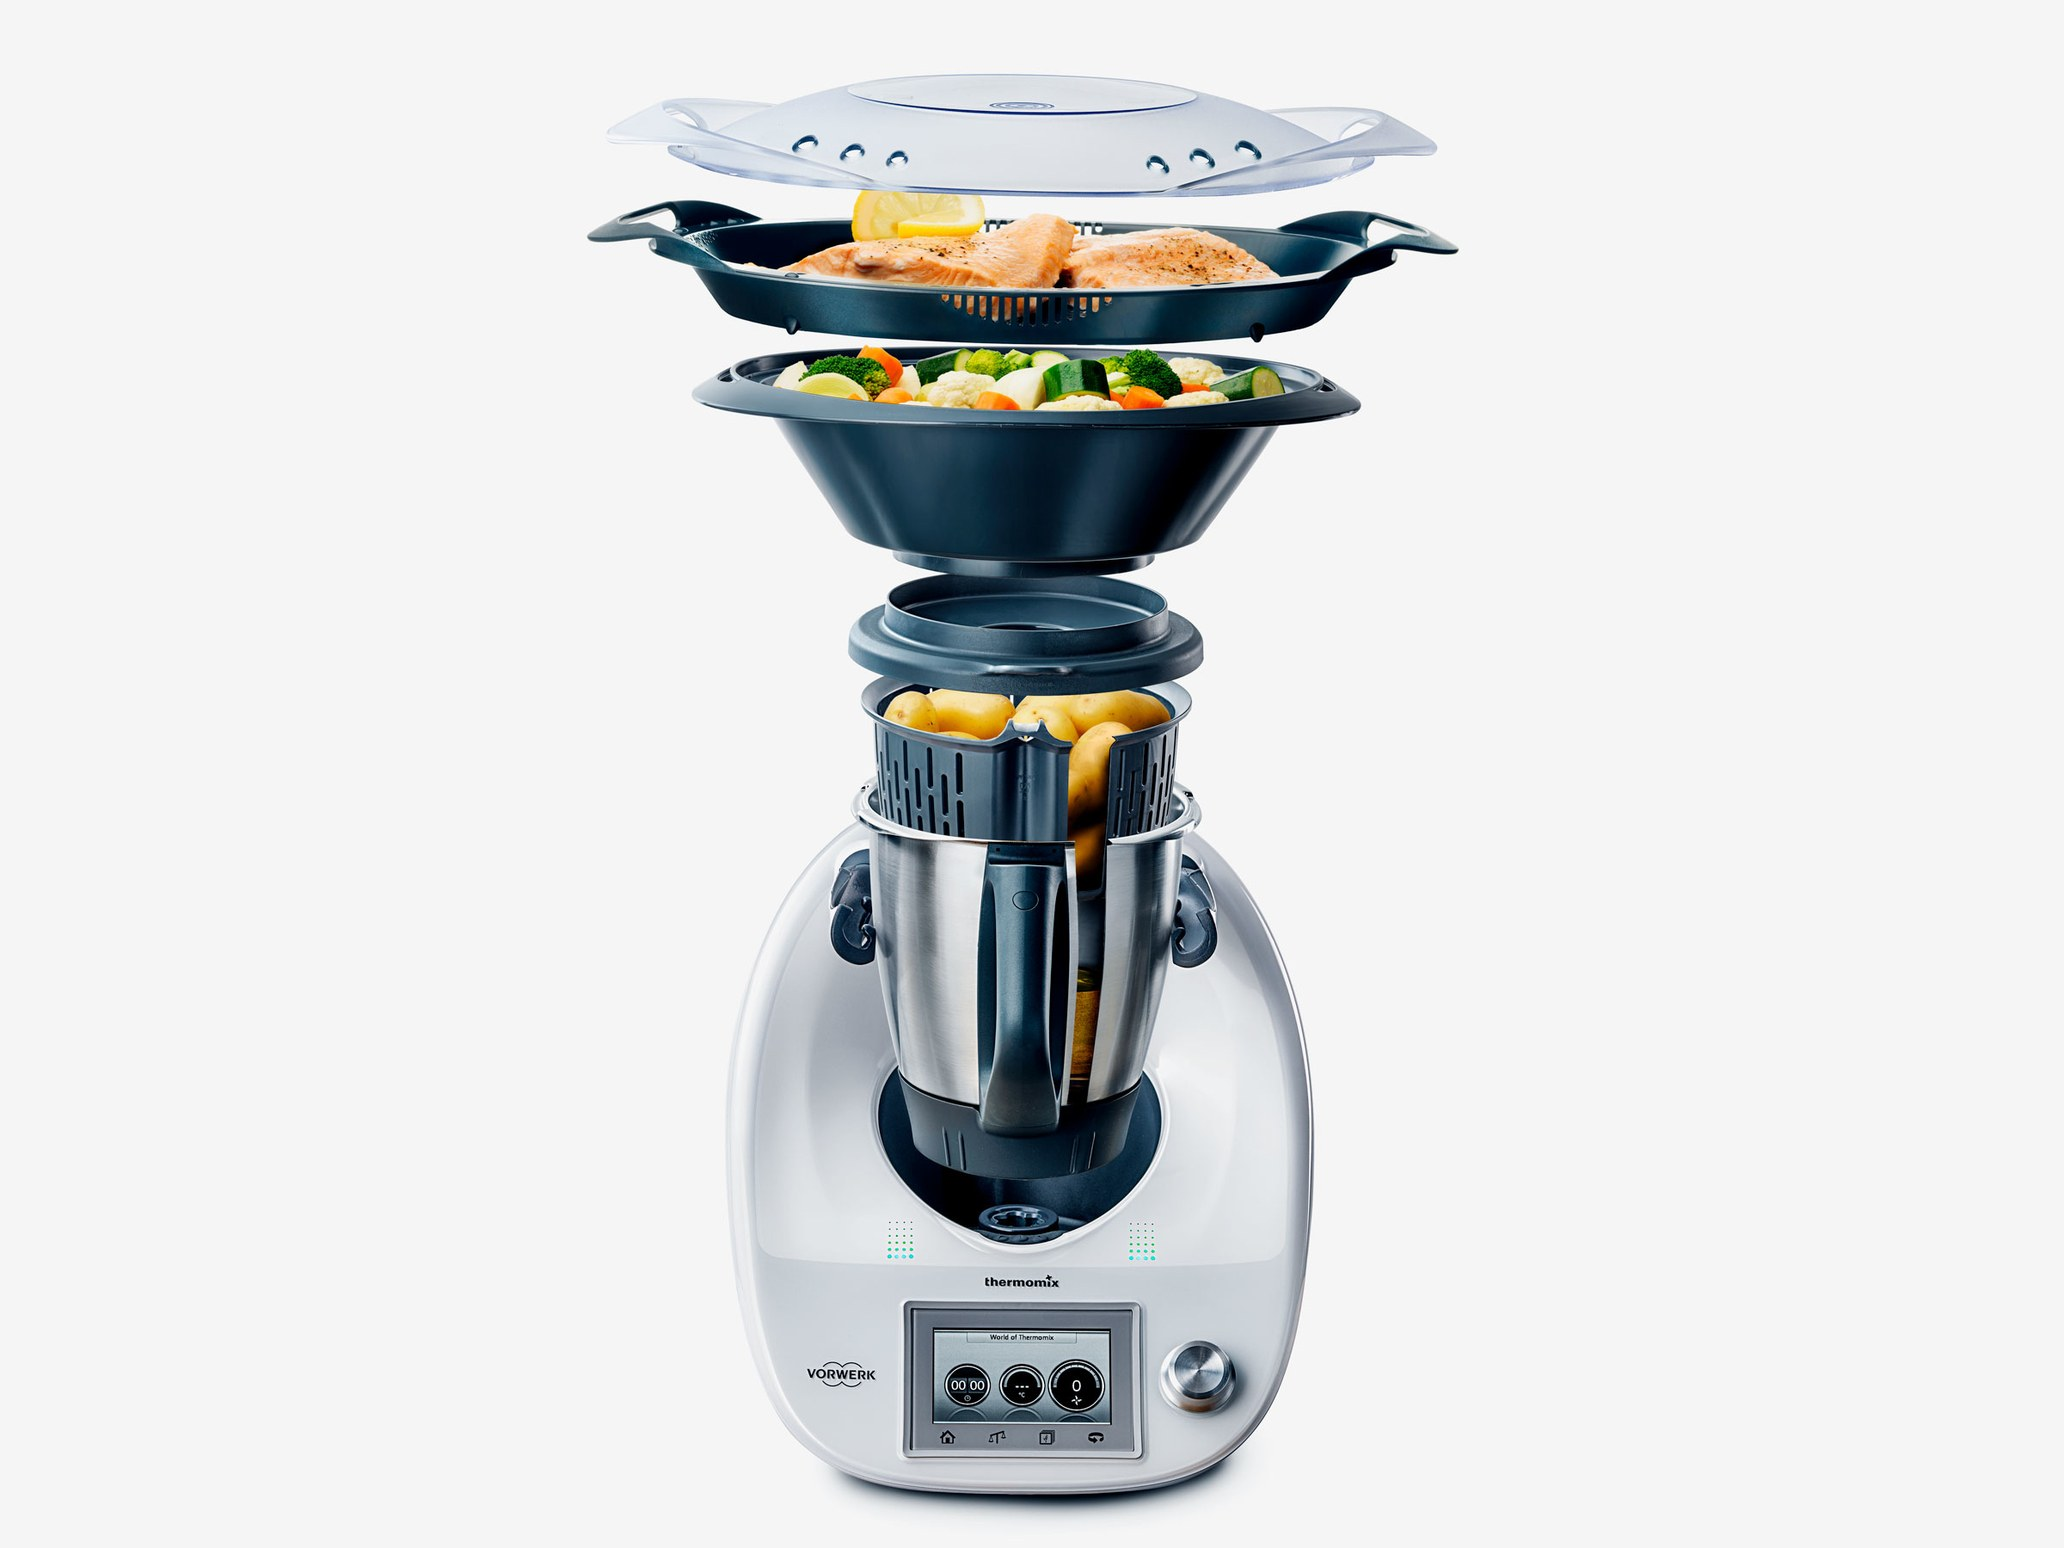 thermomix_wired.jpg